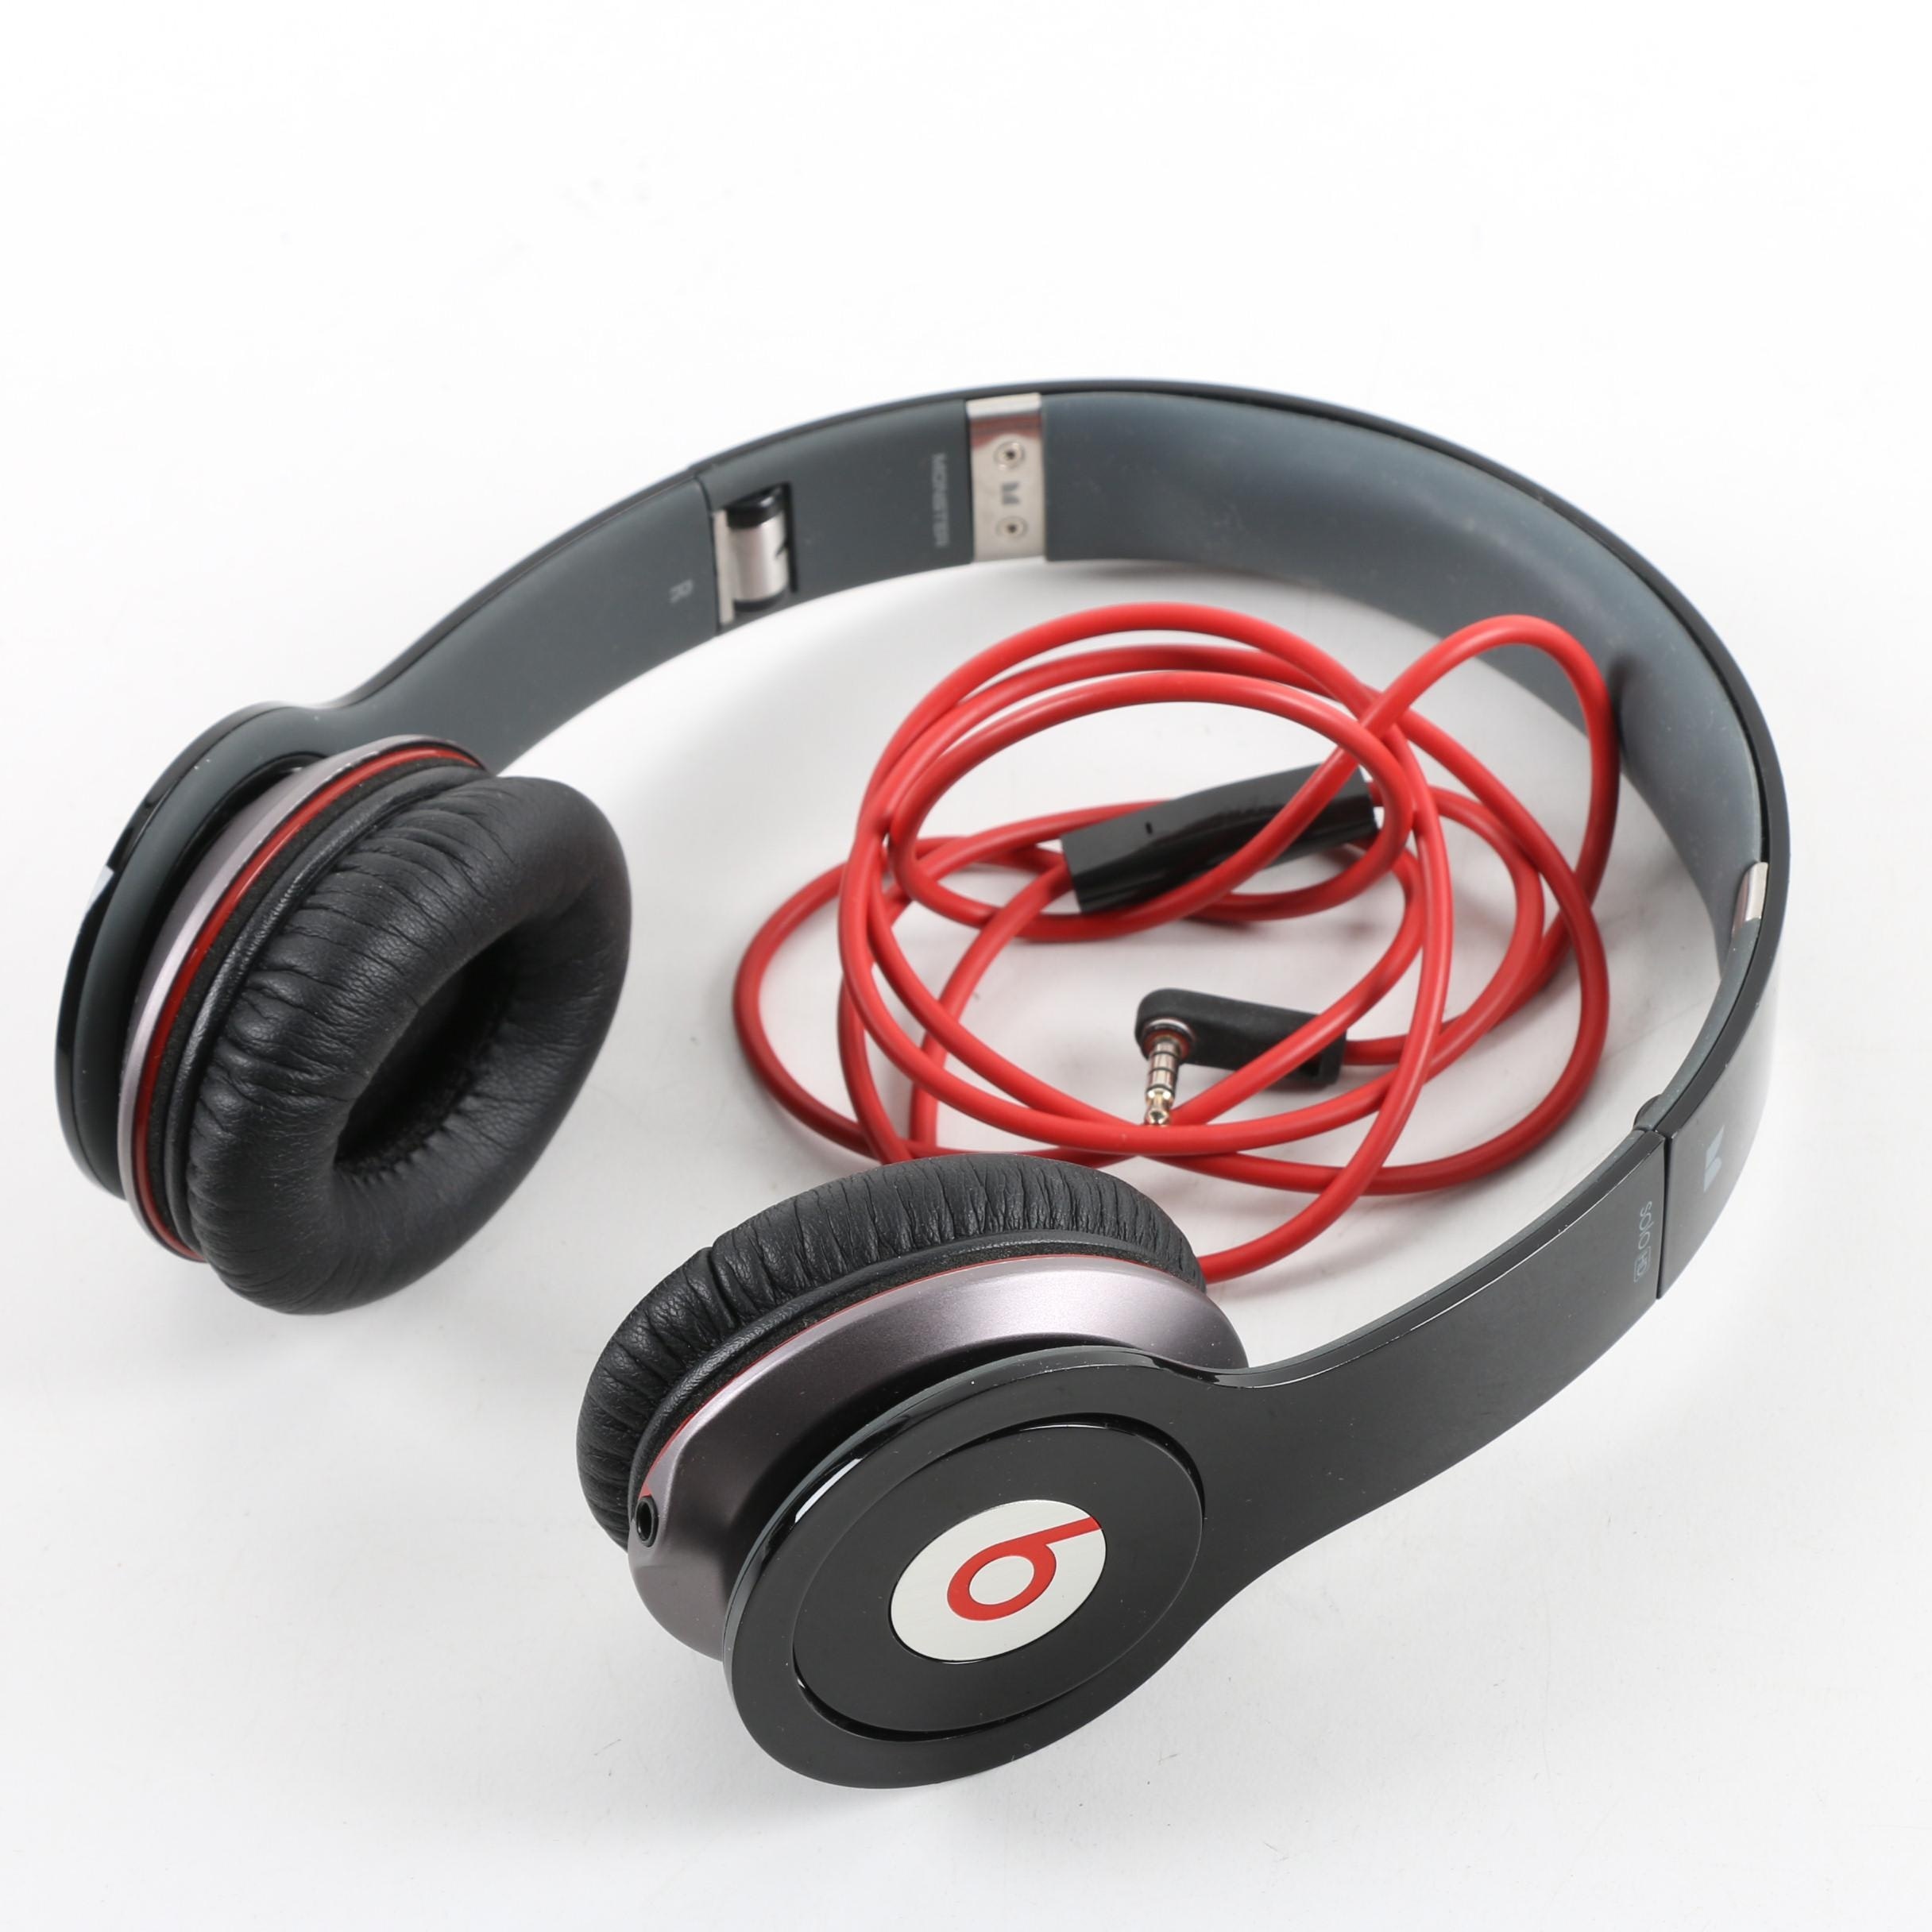 Monster Beats Solo by Dr. Dre Headphones